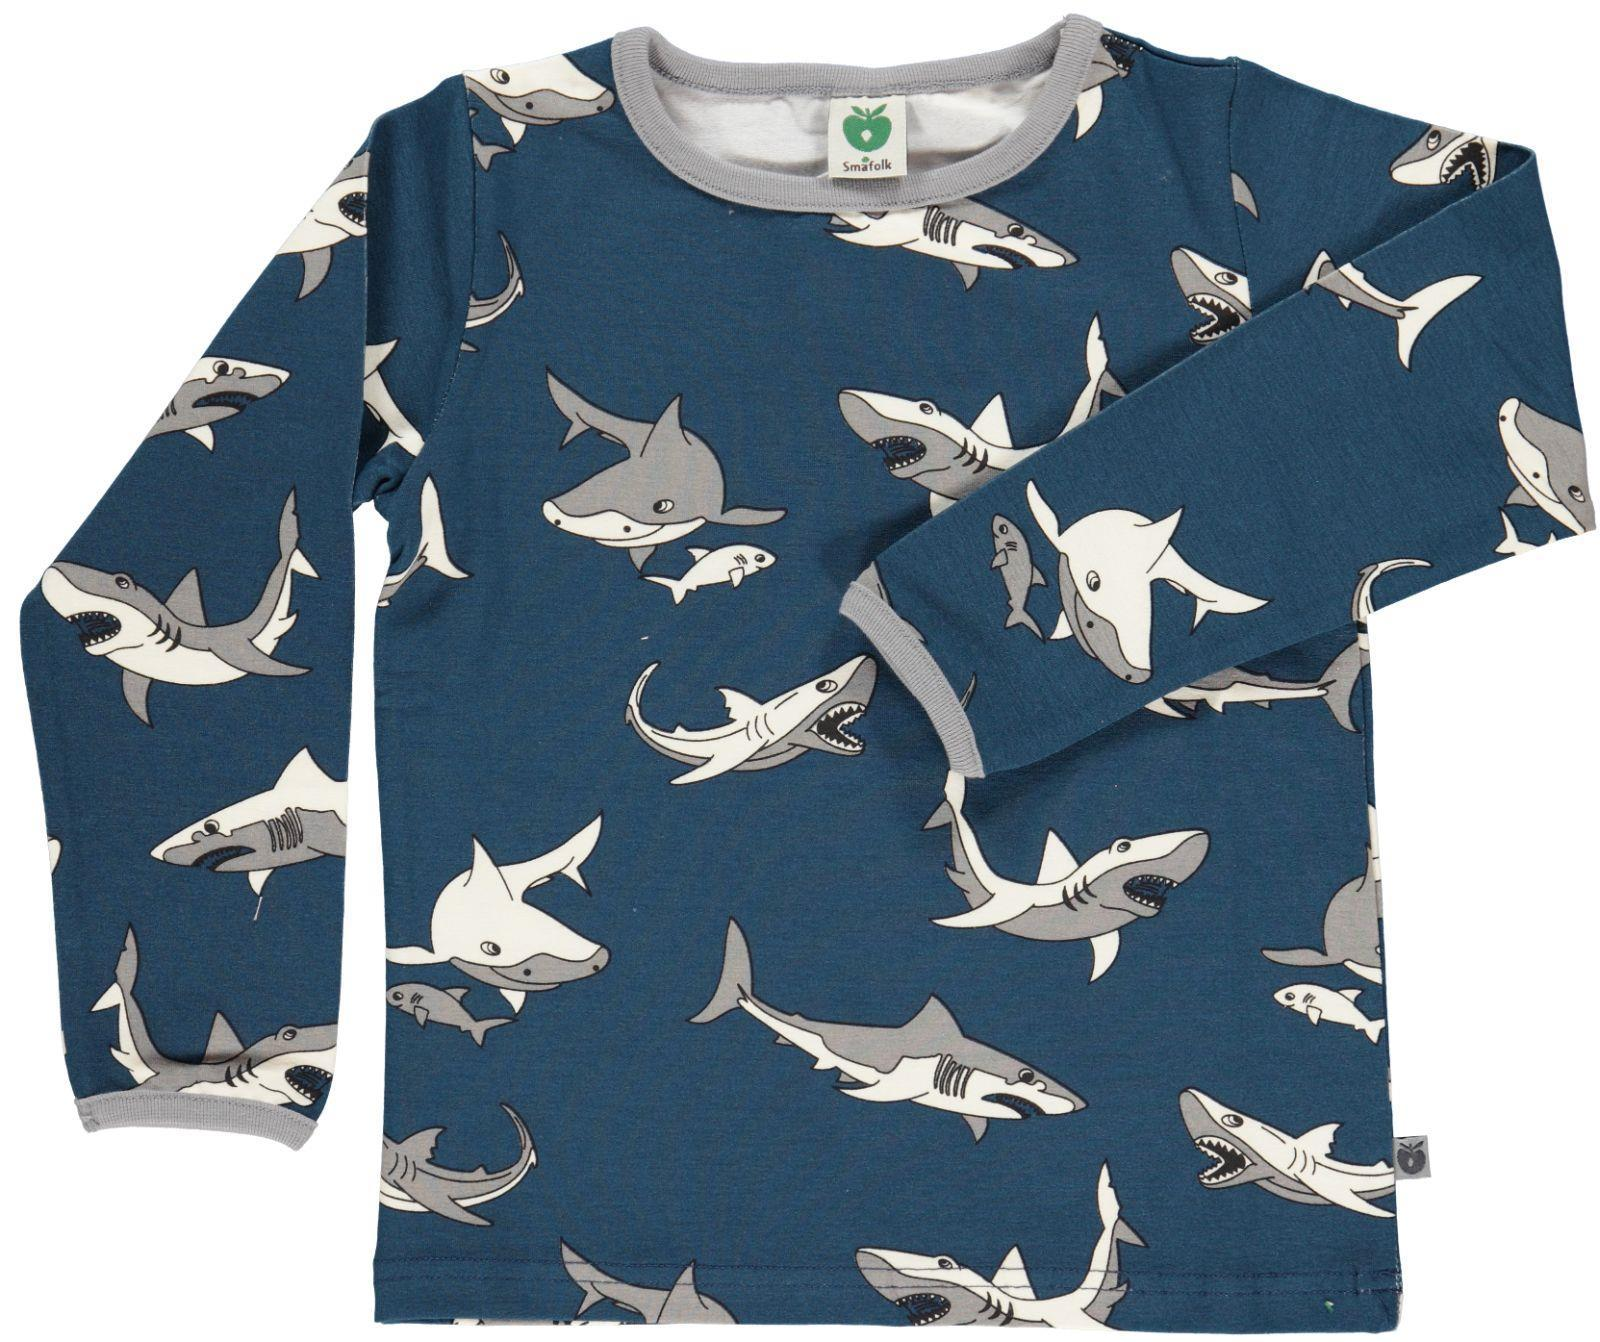 Smafolk Shark T-shirt L/S